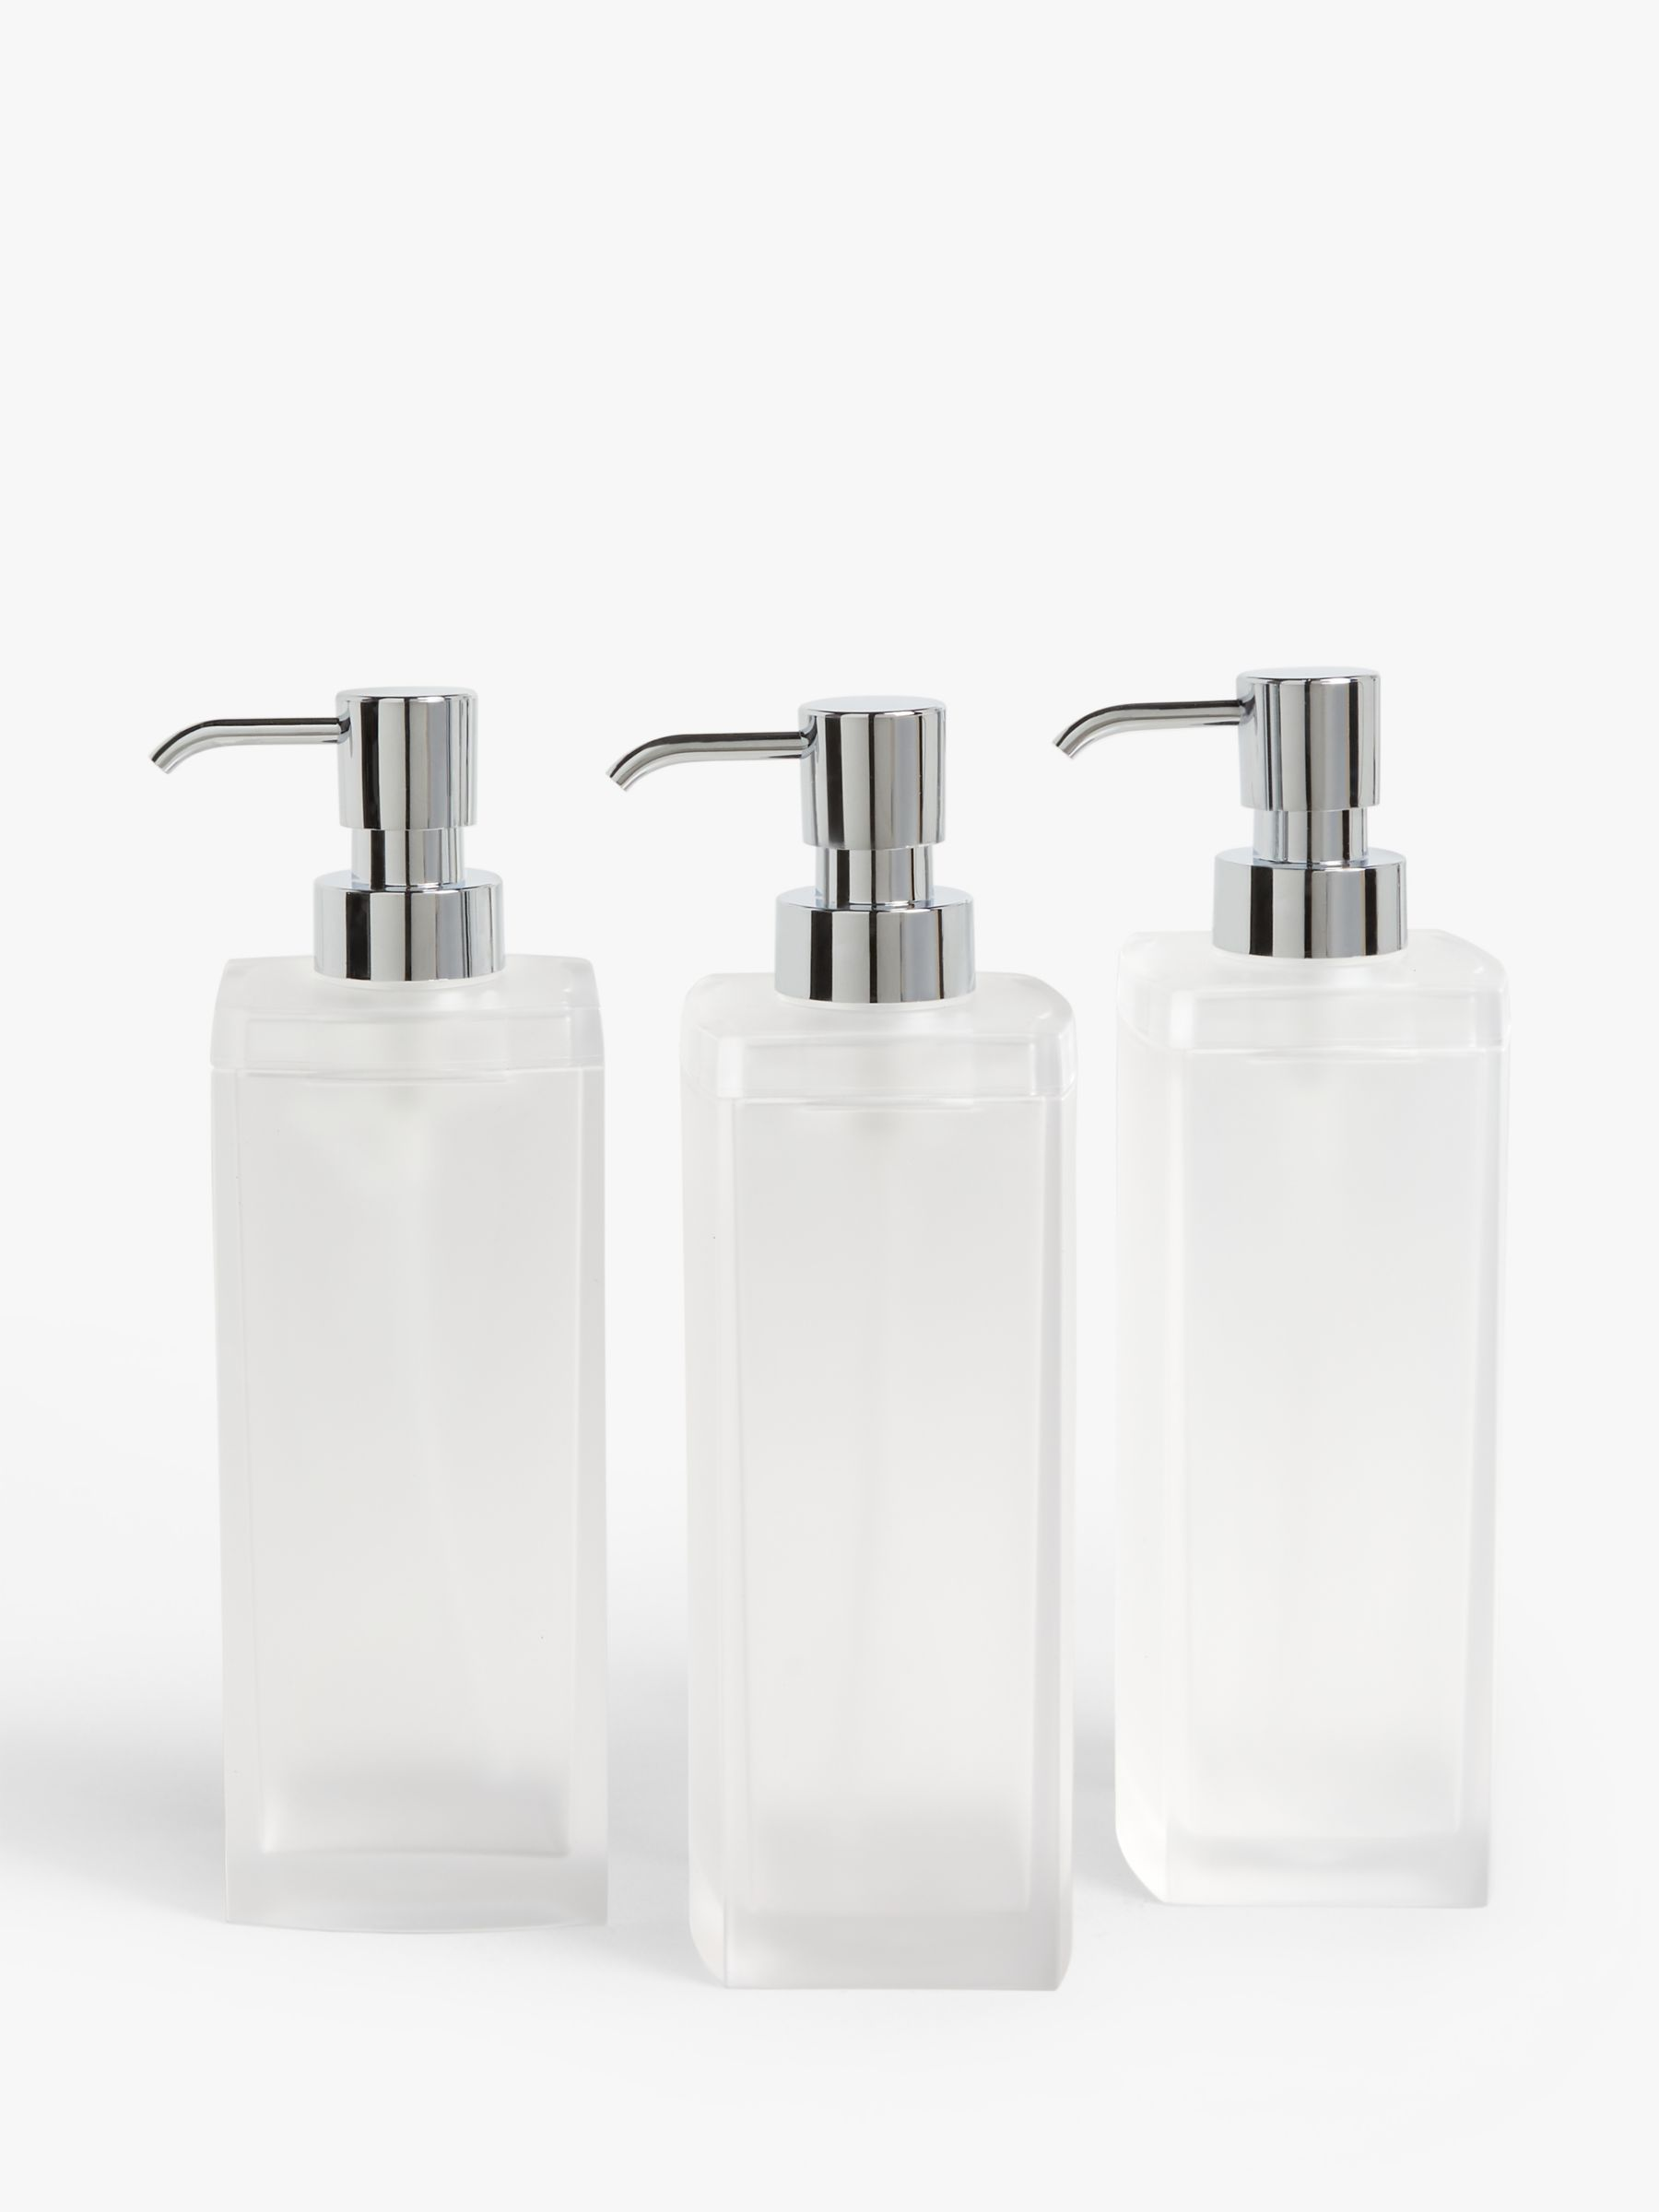 John Lewis & Partners Frosted Soap Pump, Large, Set of 3